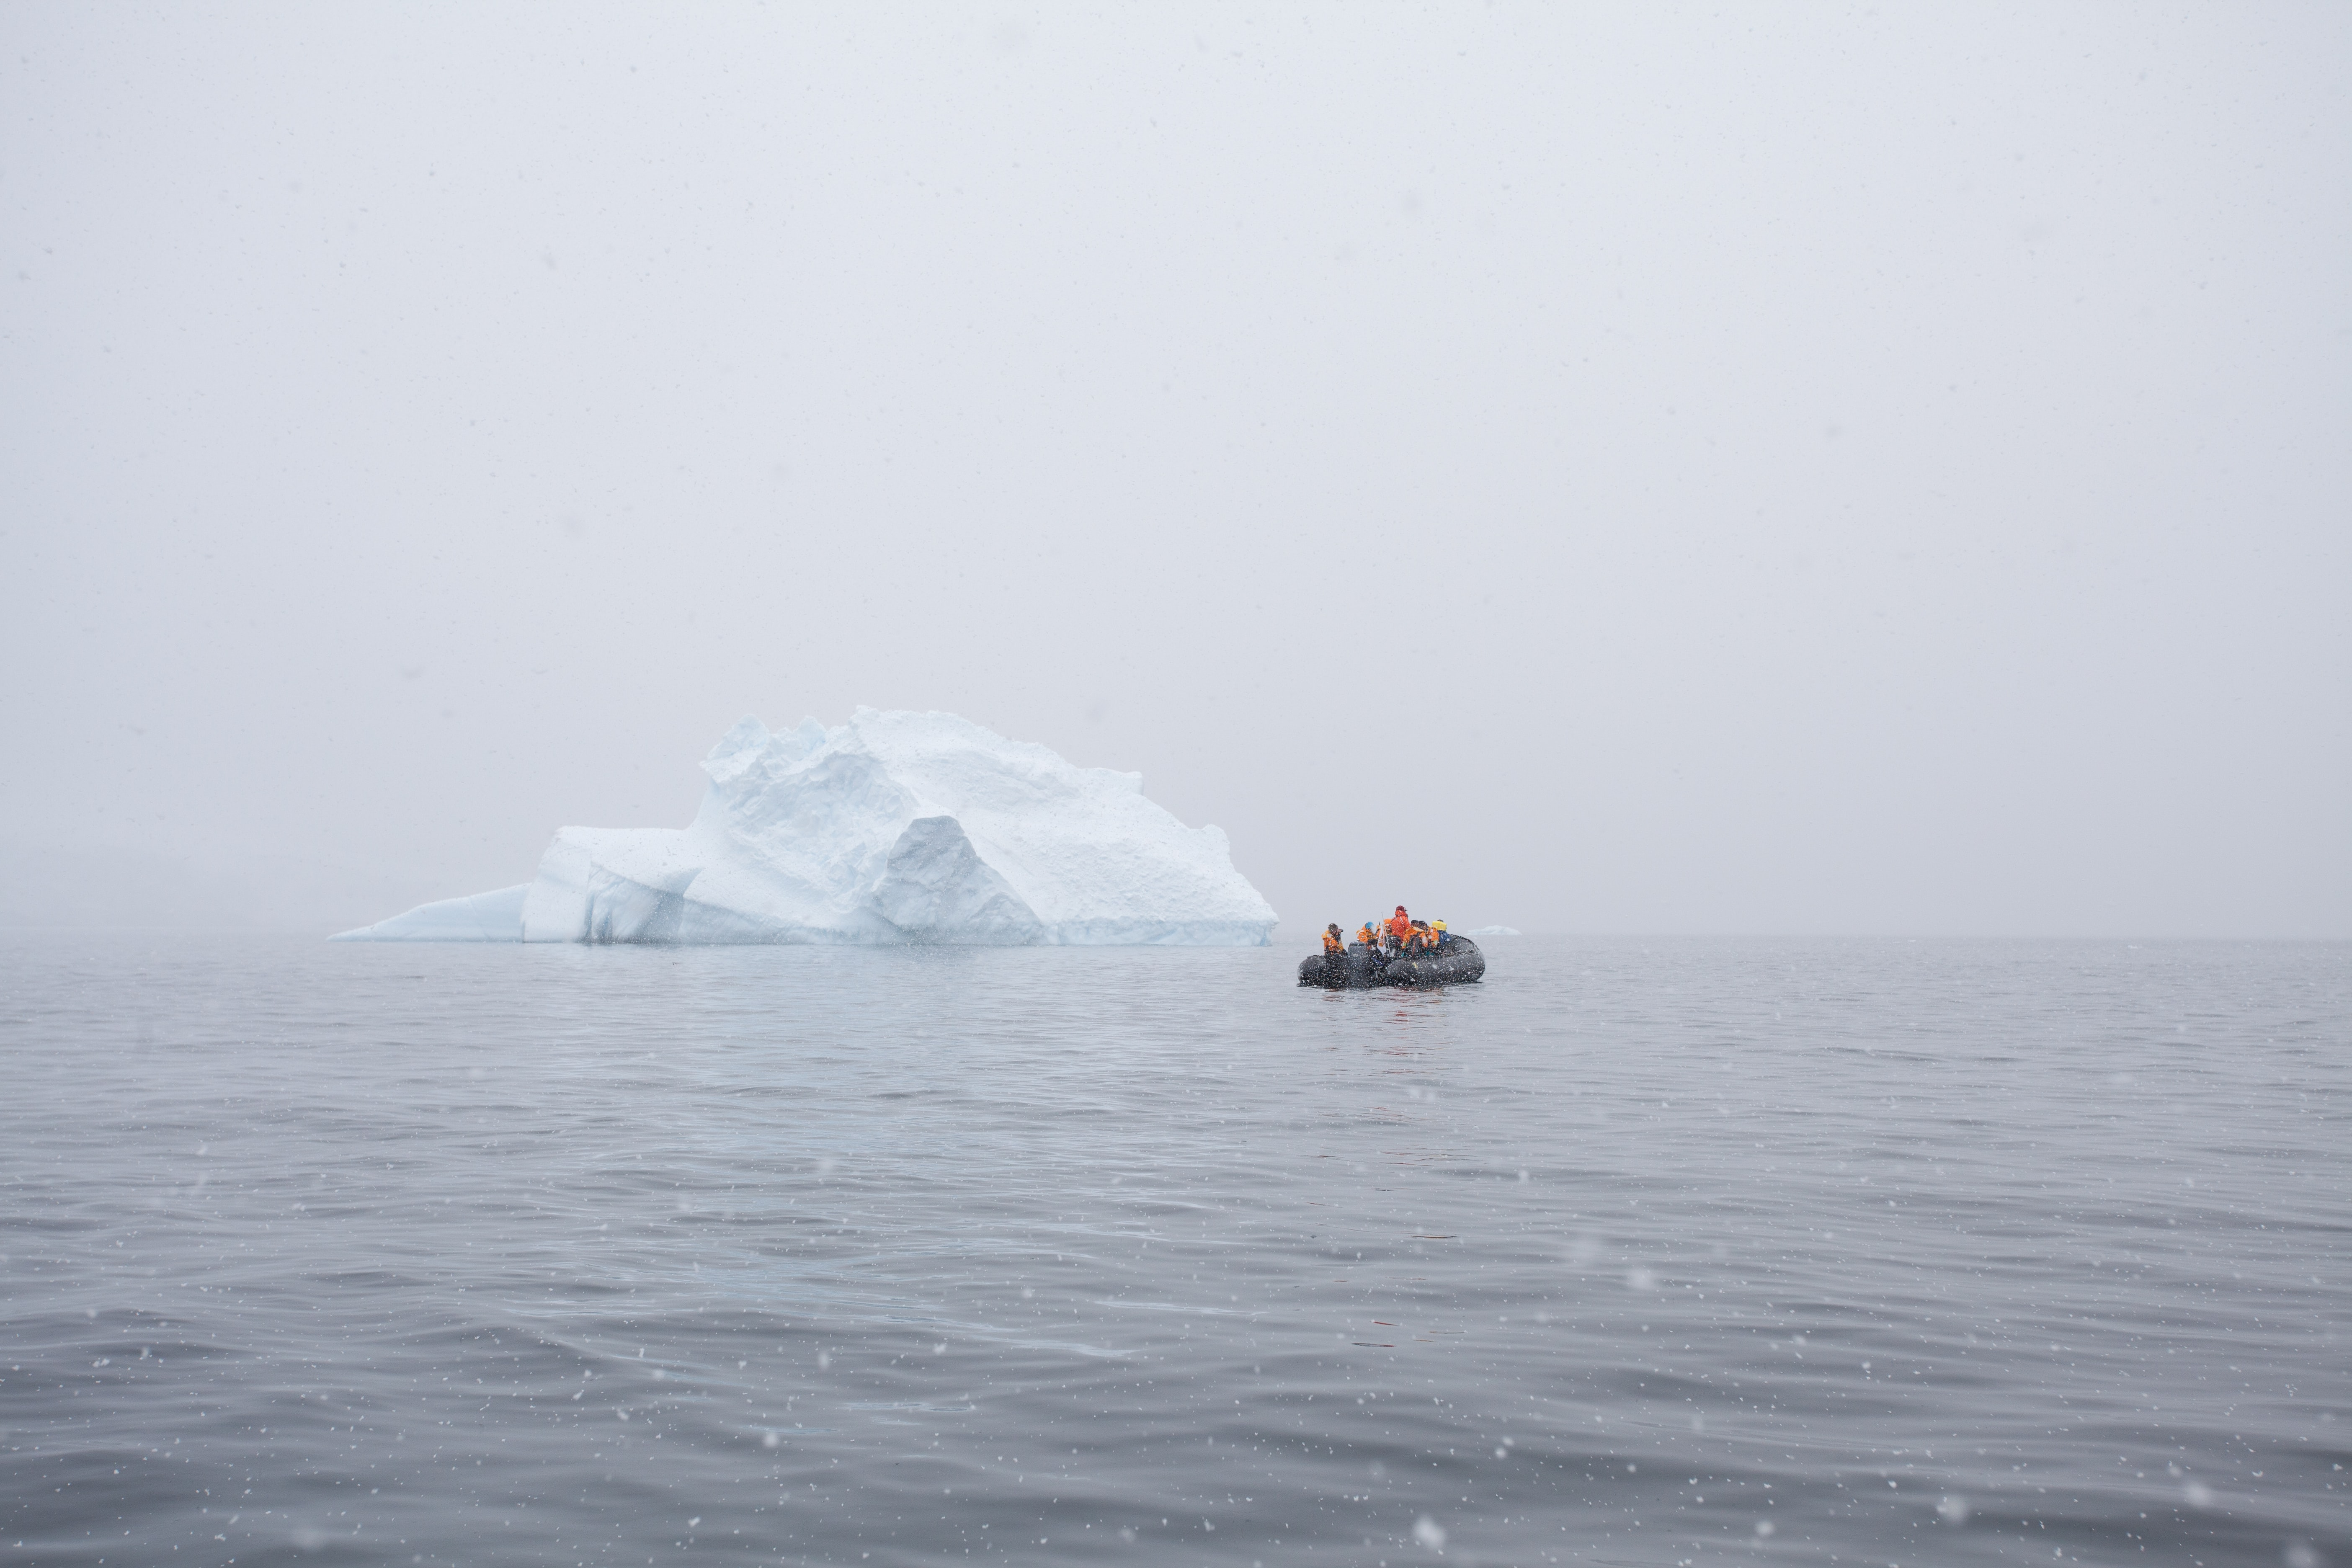 inflatable boat near iceberg